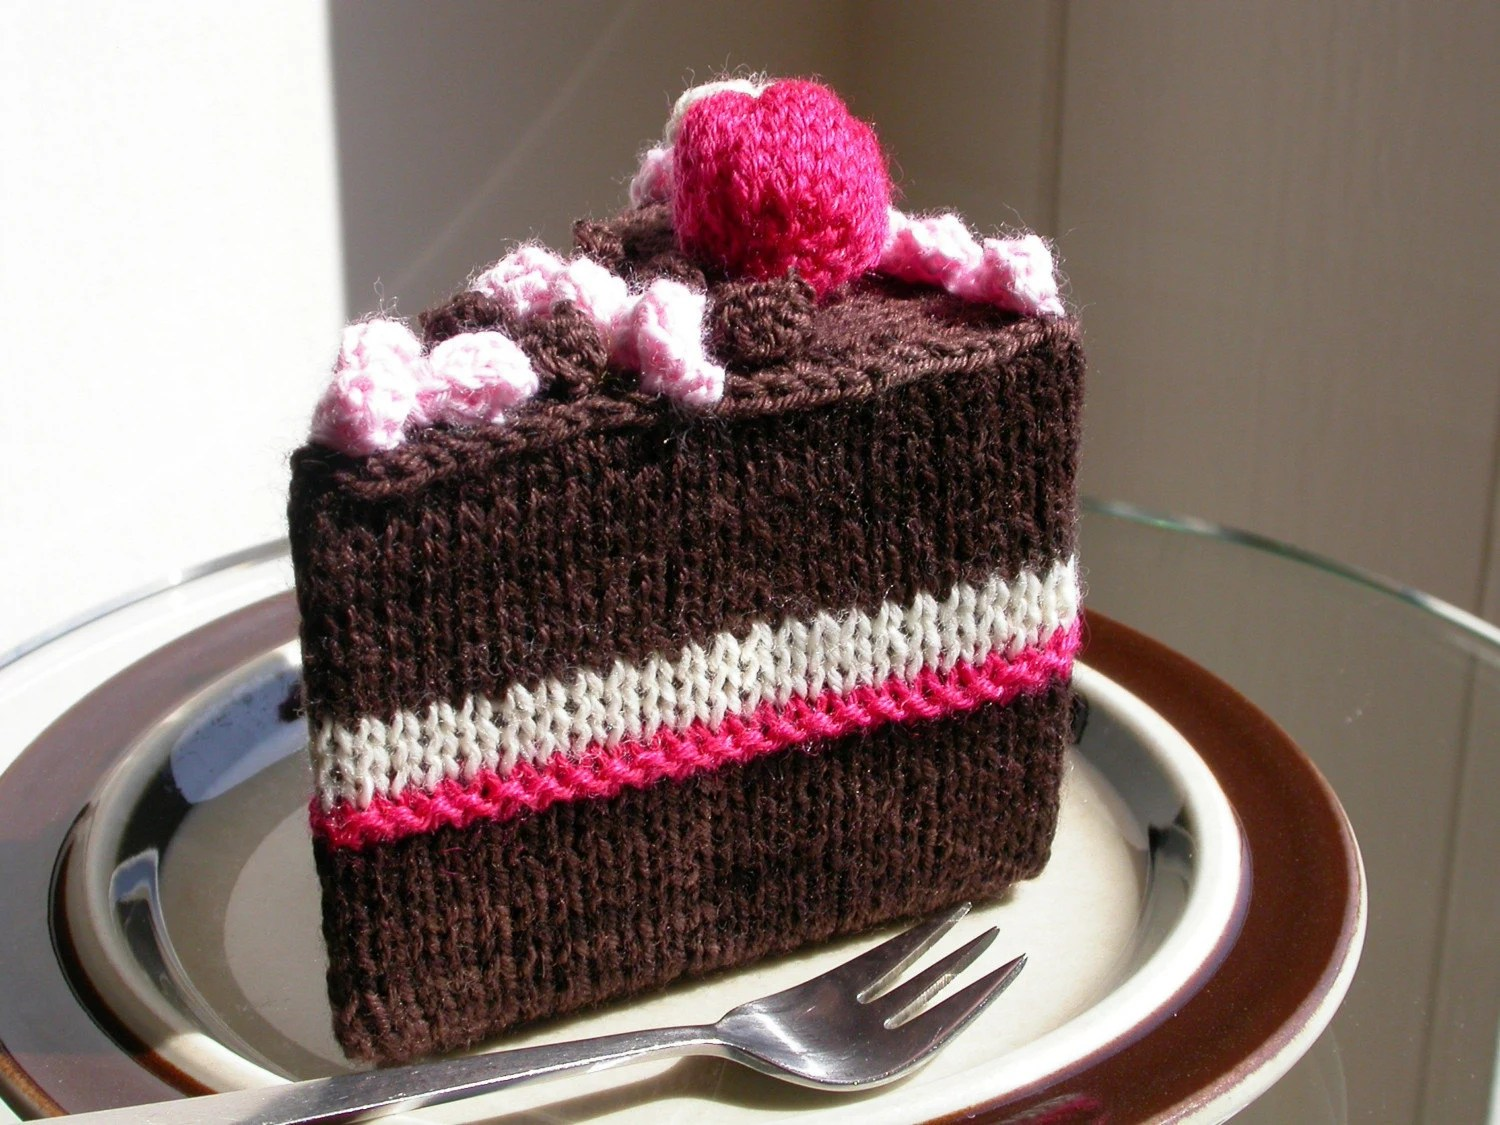 Homeknitpastries on Etsy